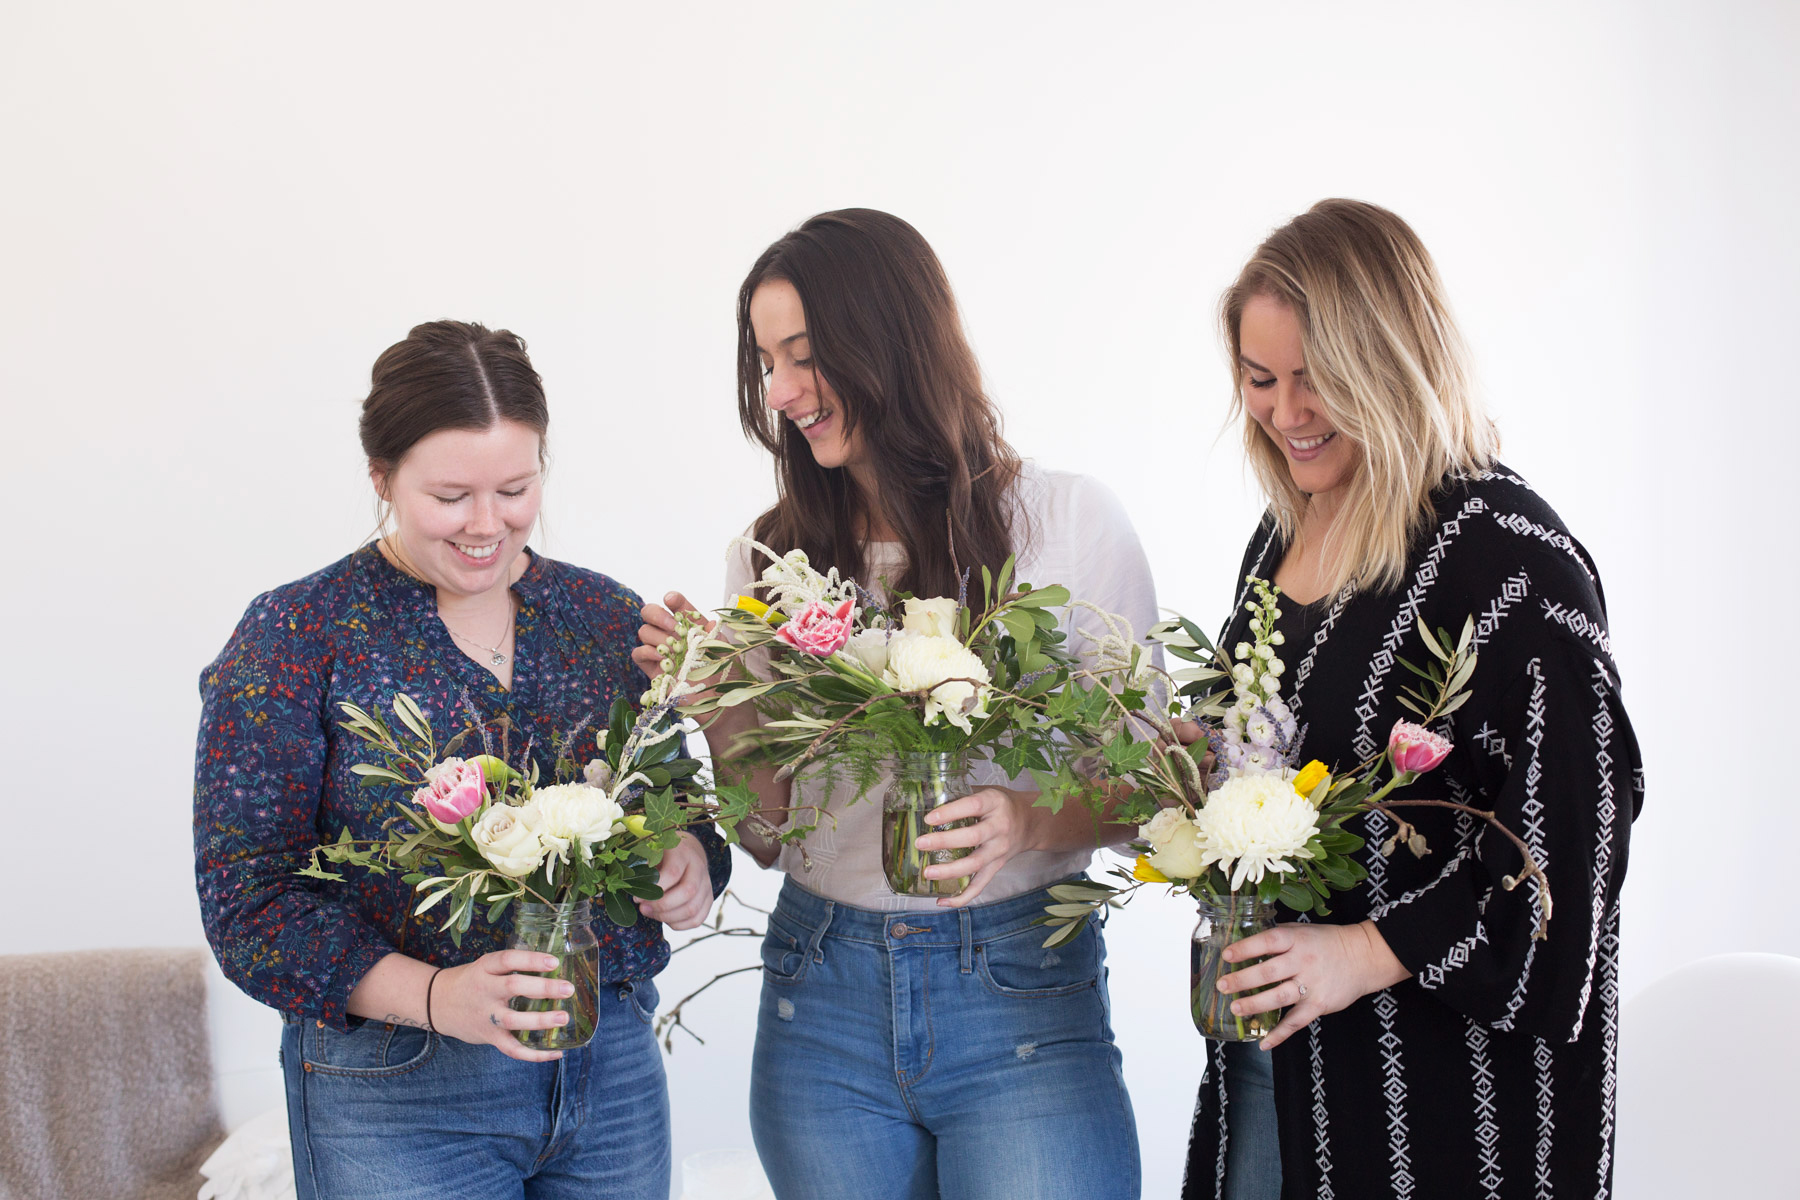 barrie flowers, barrie floral workshop, barrie social project, barrie social media, social media strategist, creative collaboration, barrie photography, shannon bellisle, forgather floral co, jennifer klemetti, handmade flower arrangement